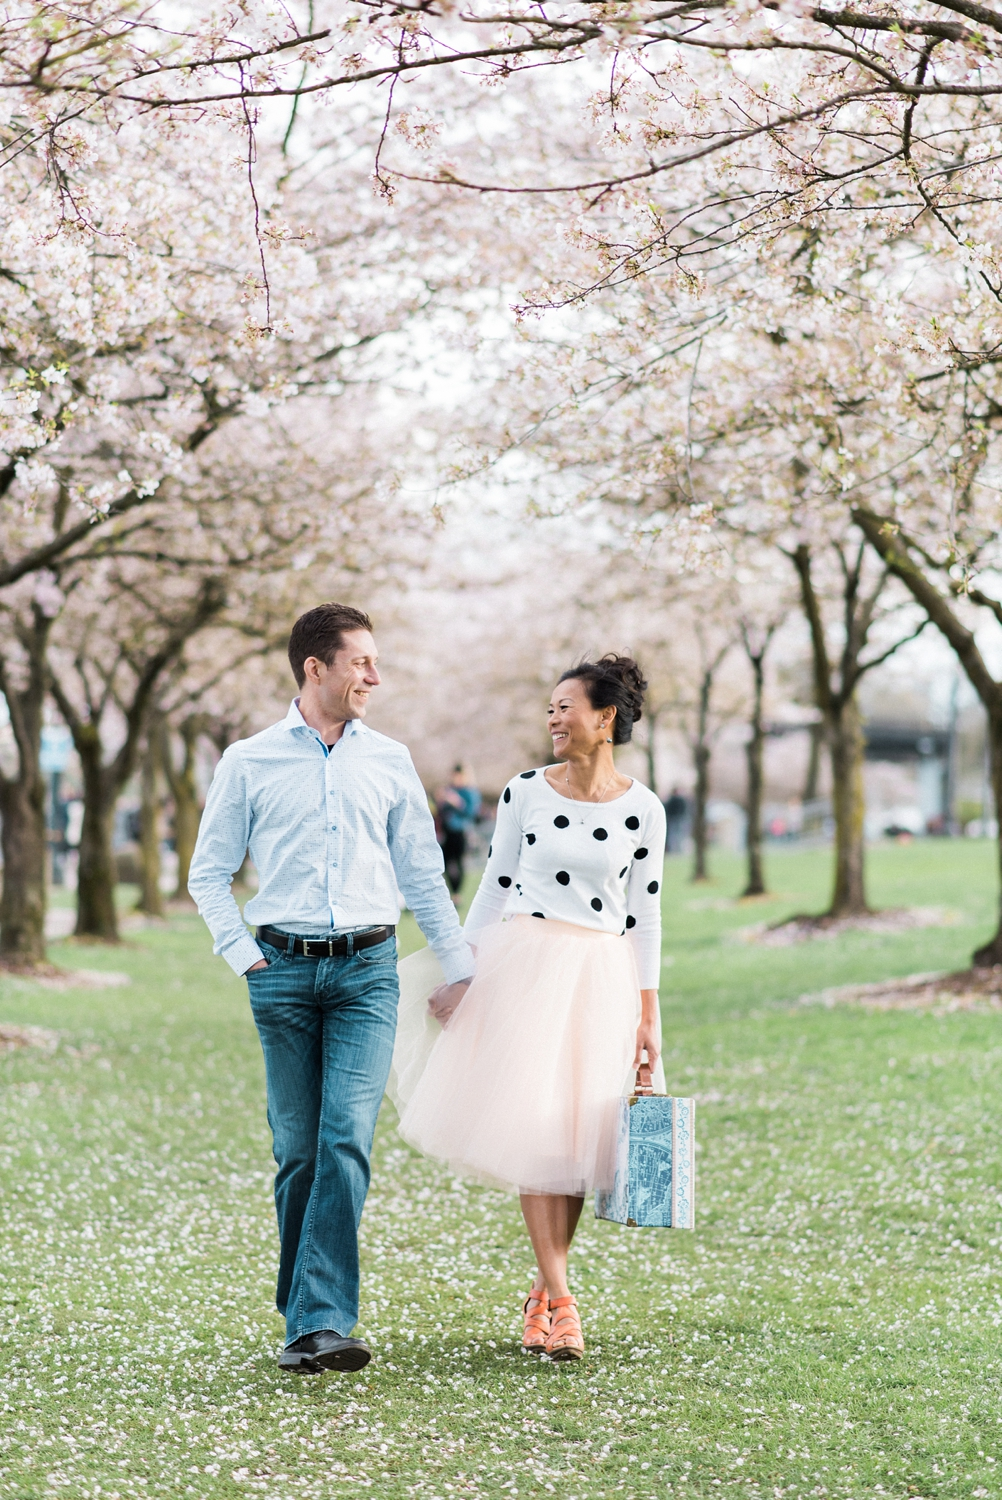 portland-waterfront-engagement-cherry-blossom-cathedral-park-sokhorn-jay-126_cr.jpg